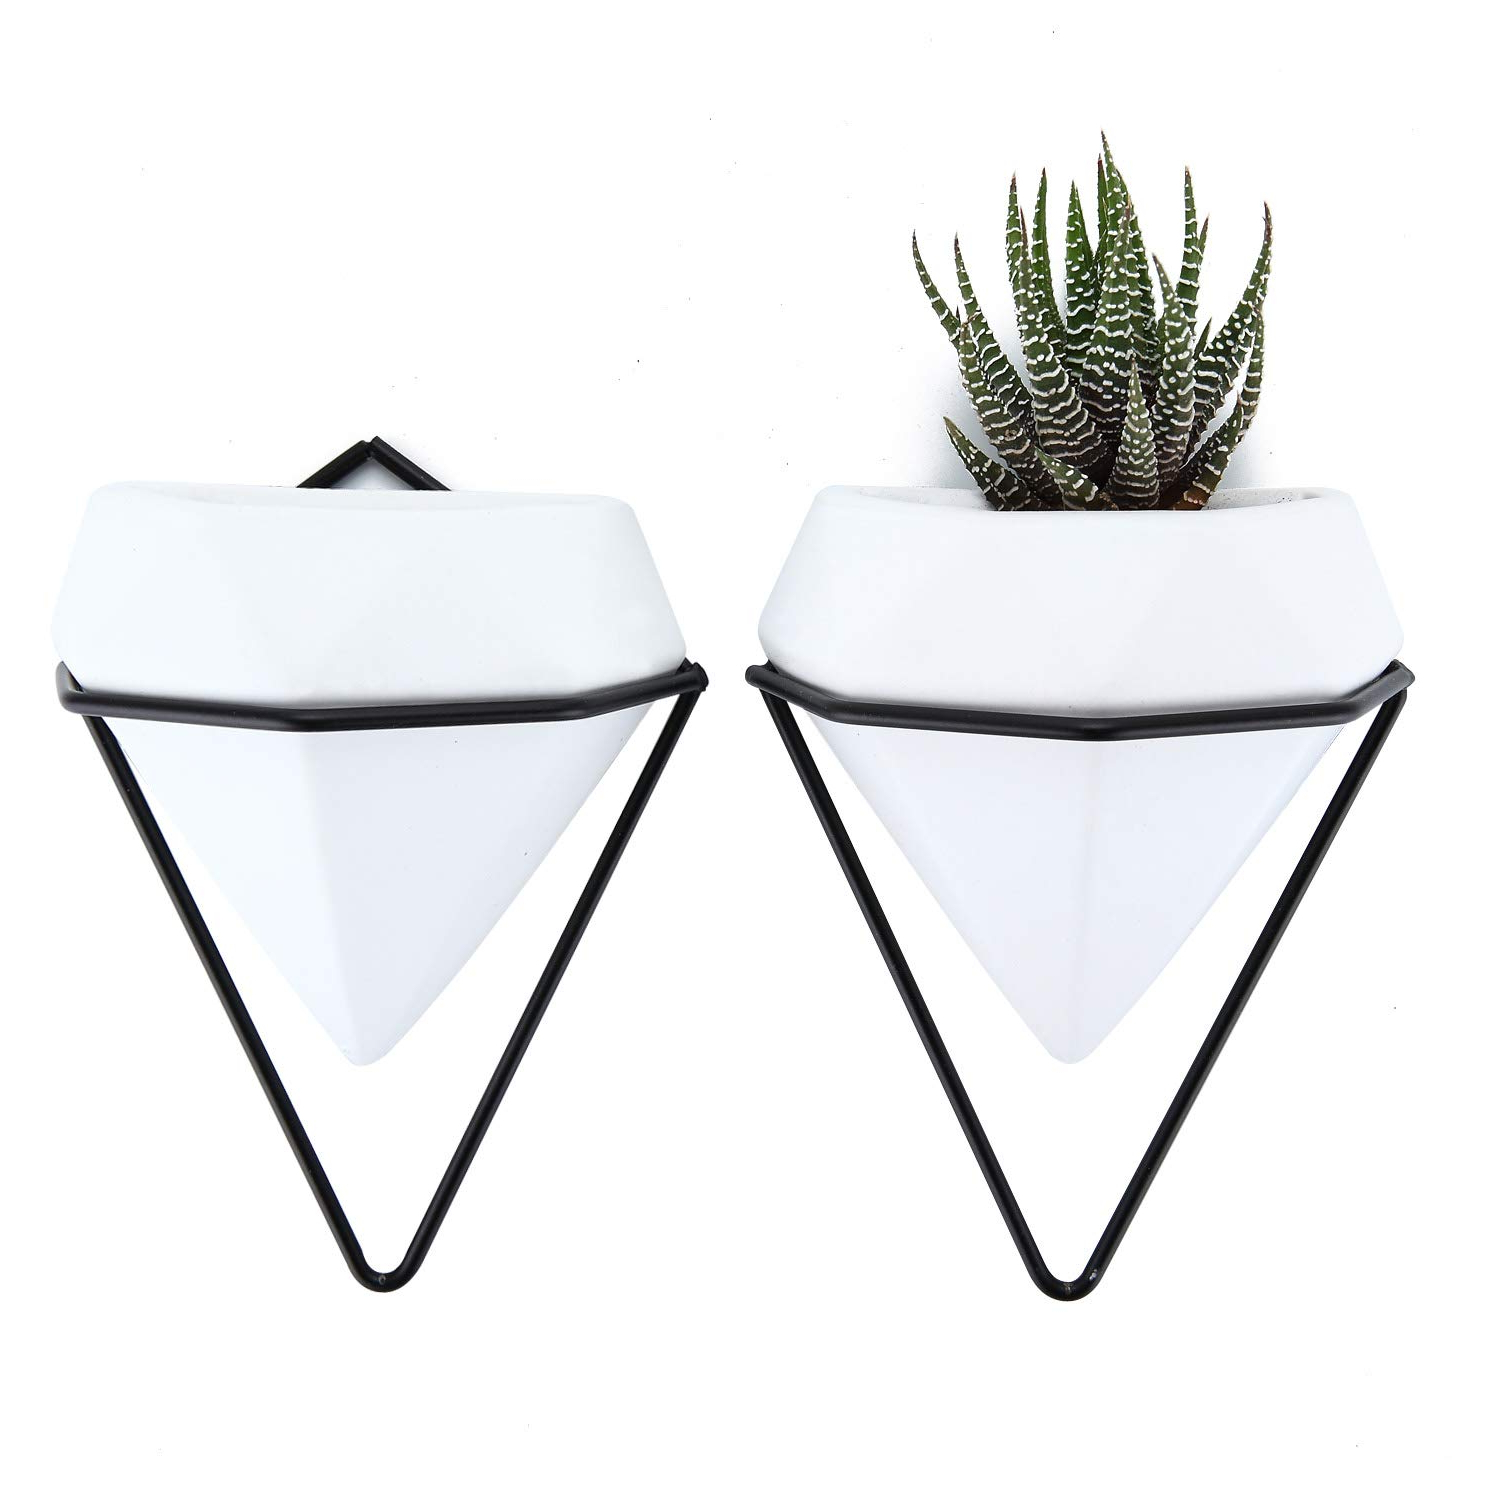 Trigg Ceramic Planter Wall Decor Throughout Widely Used Amazon: T4U Diamond Wall Planters Geometric Wall Vases Set Of (View 6 of 20)